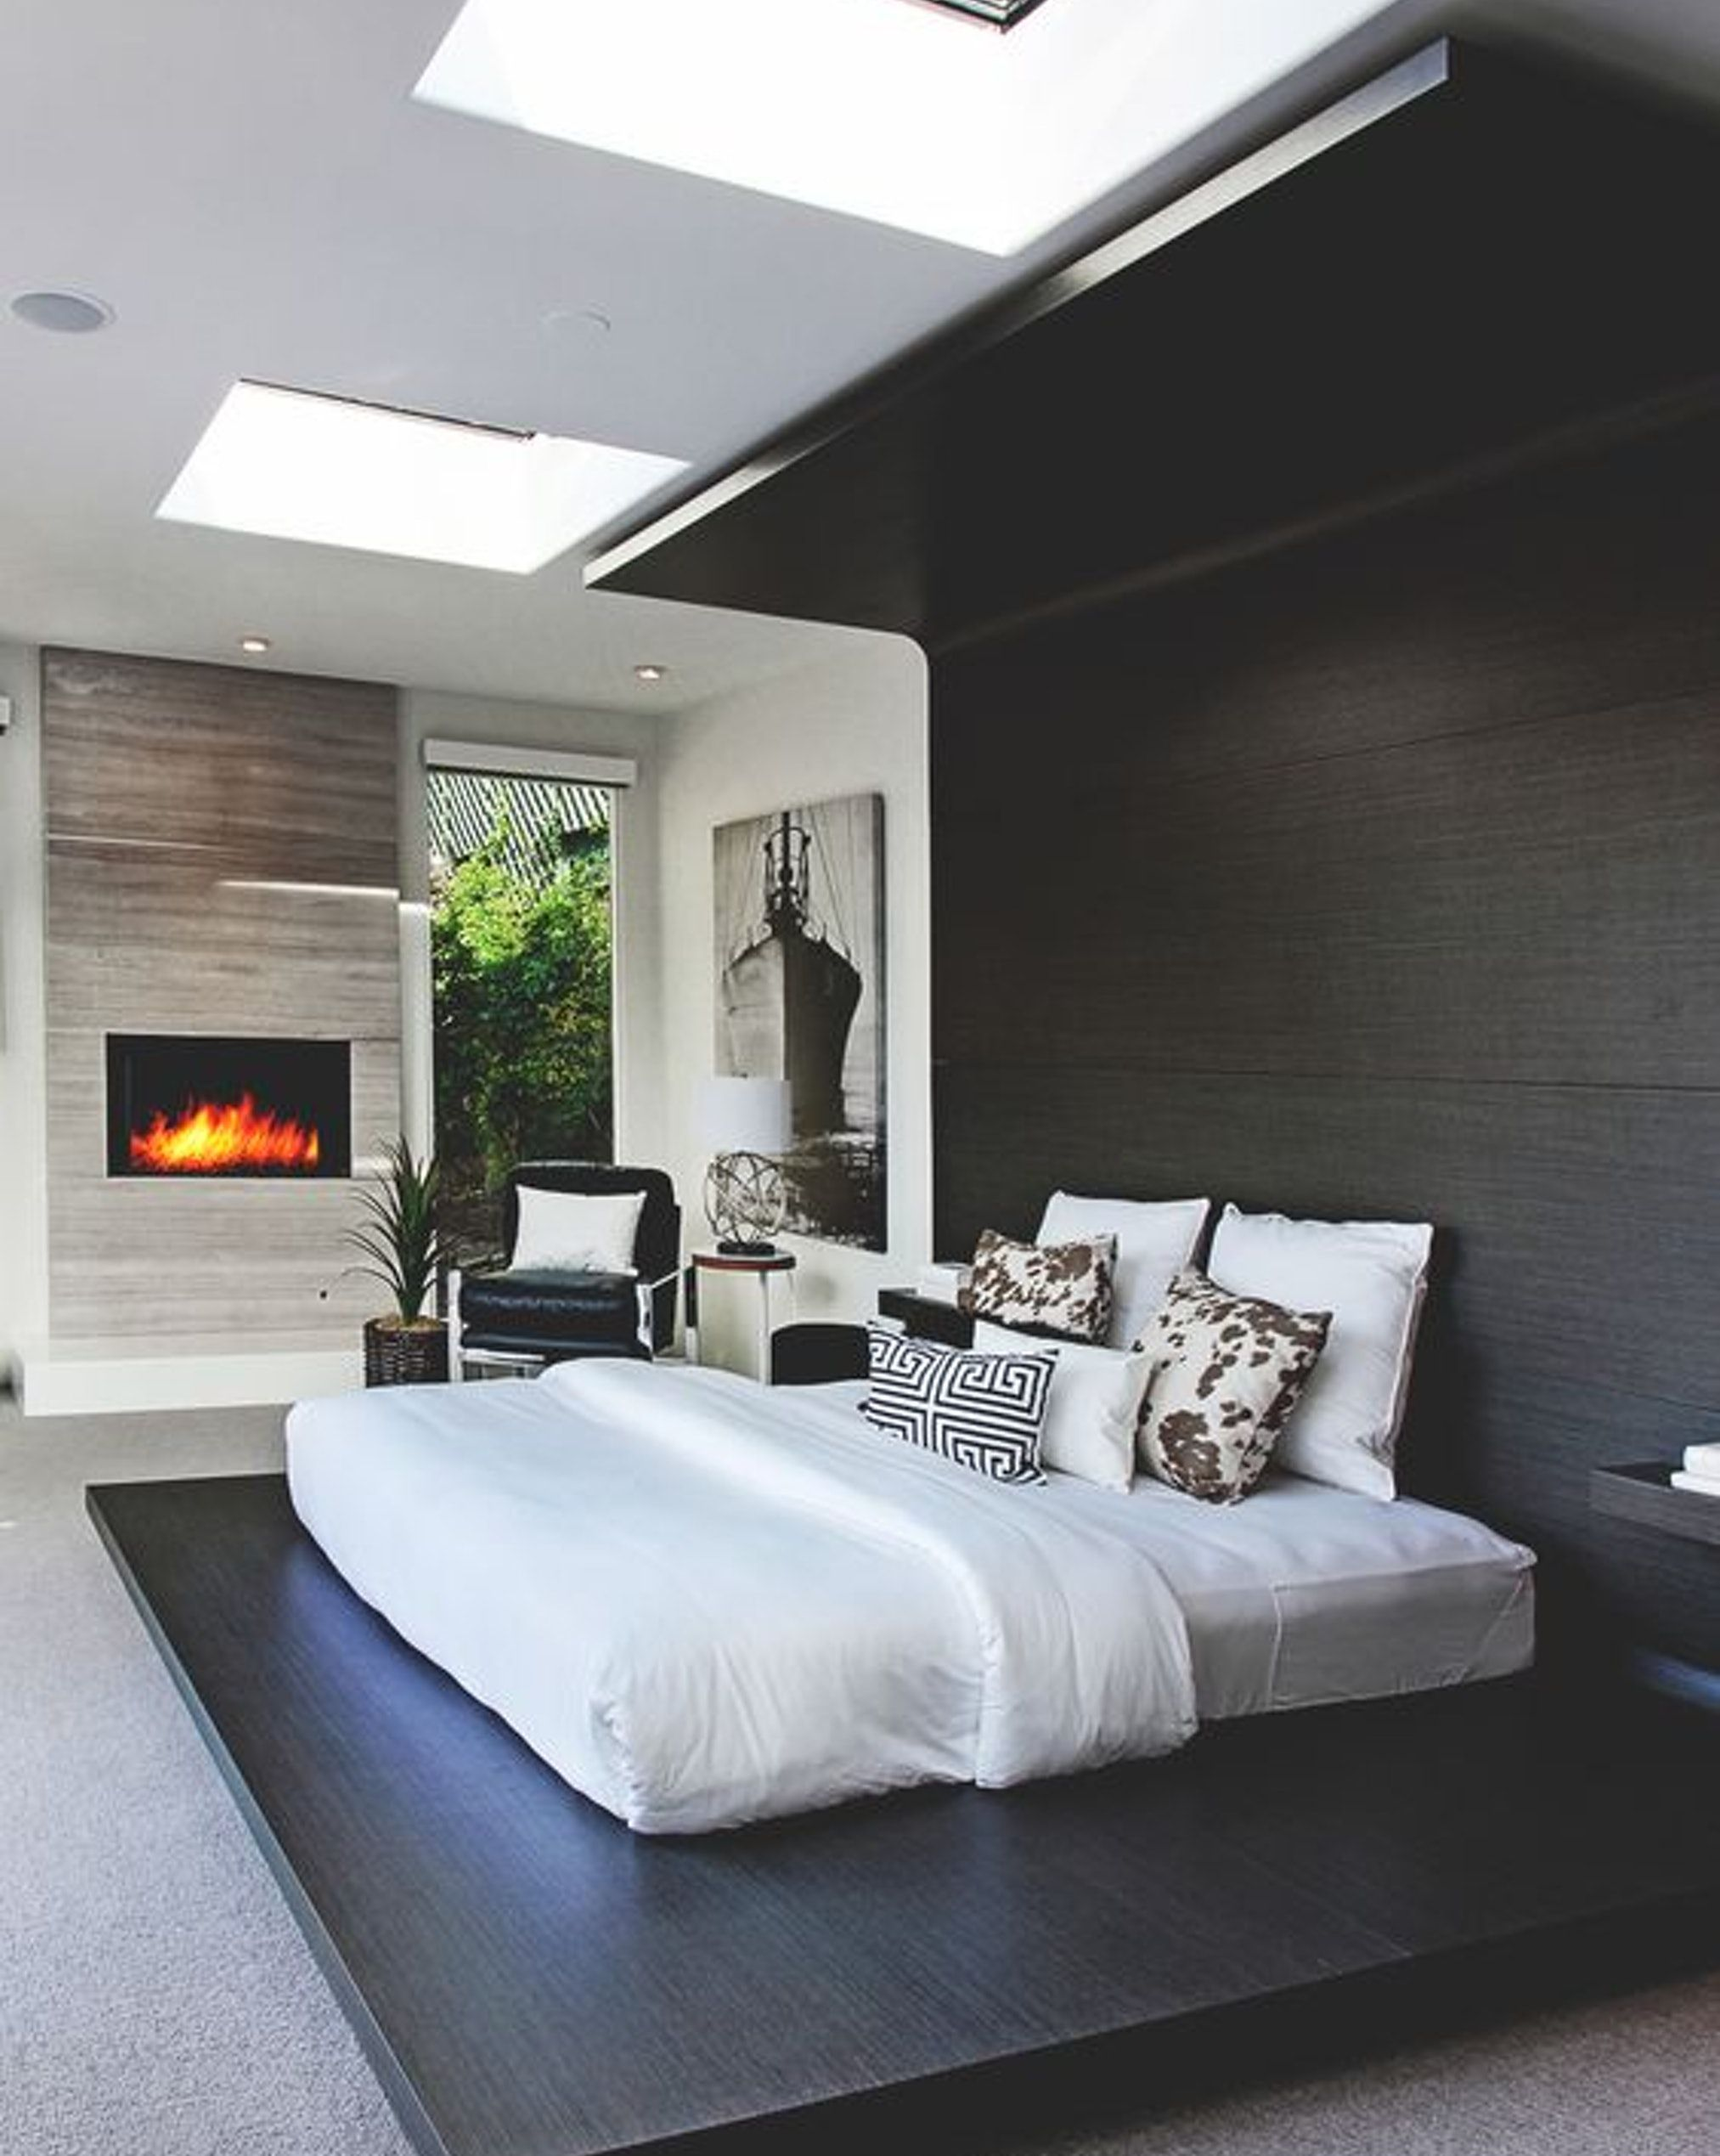 Interior Design Style Quiz | Modern bedroom design ...